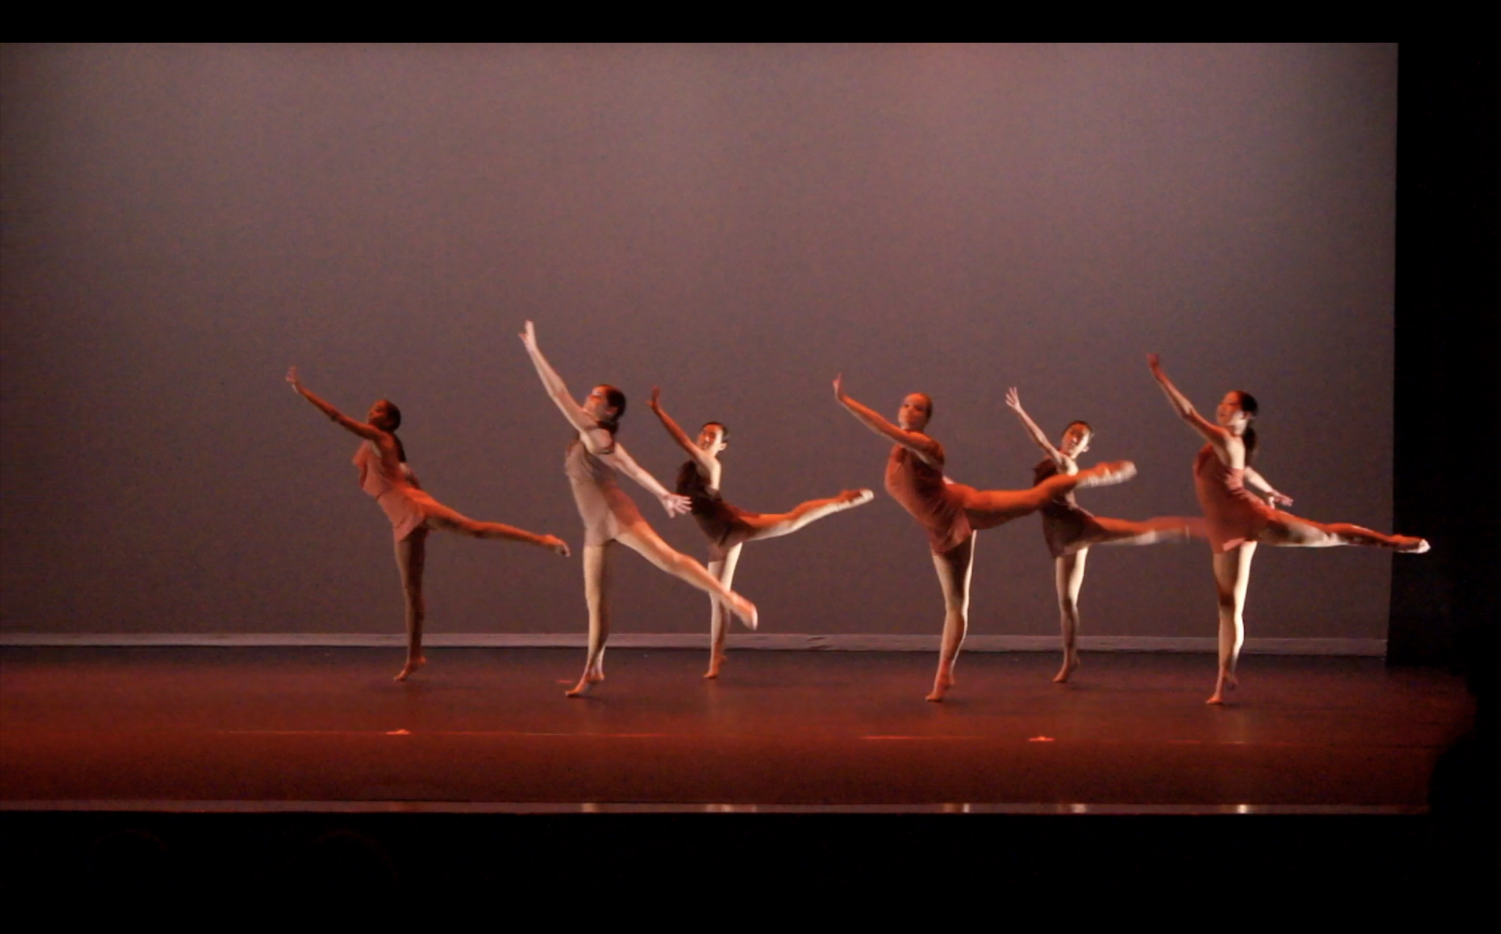 Behind the scenes: dancers prepare for choreography showcase